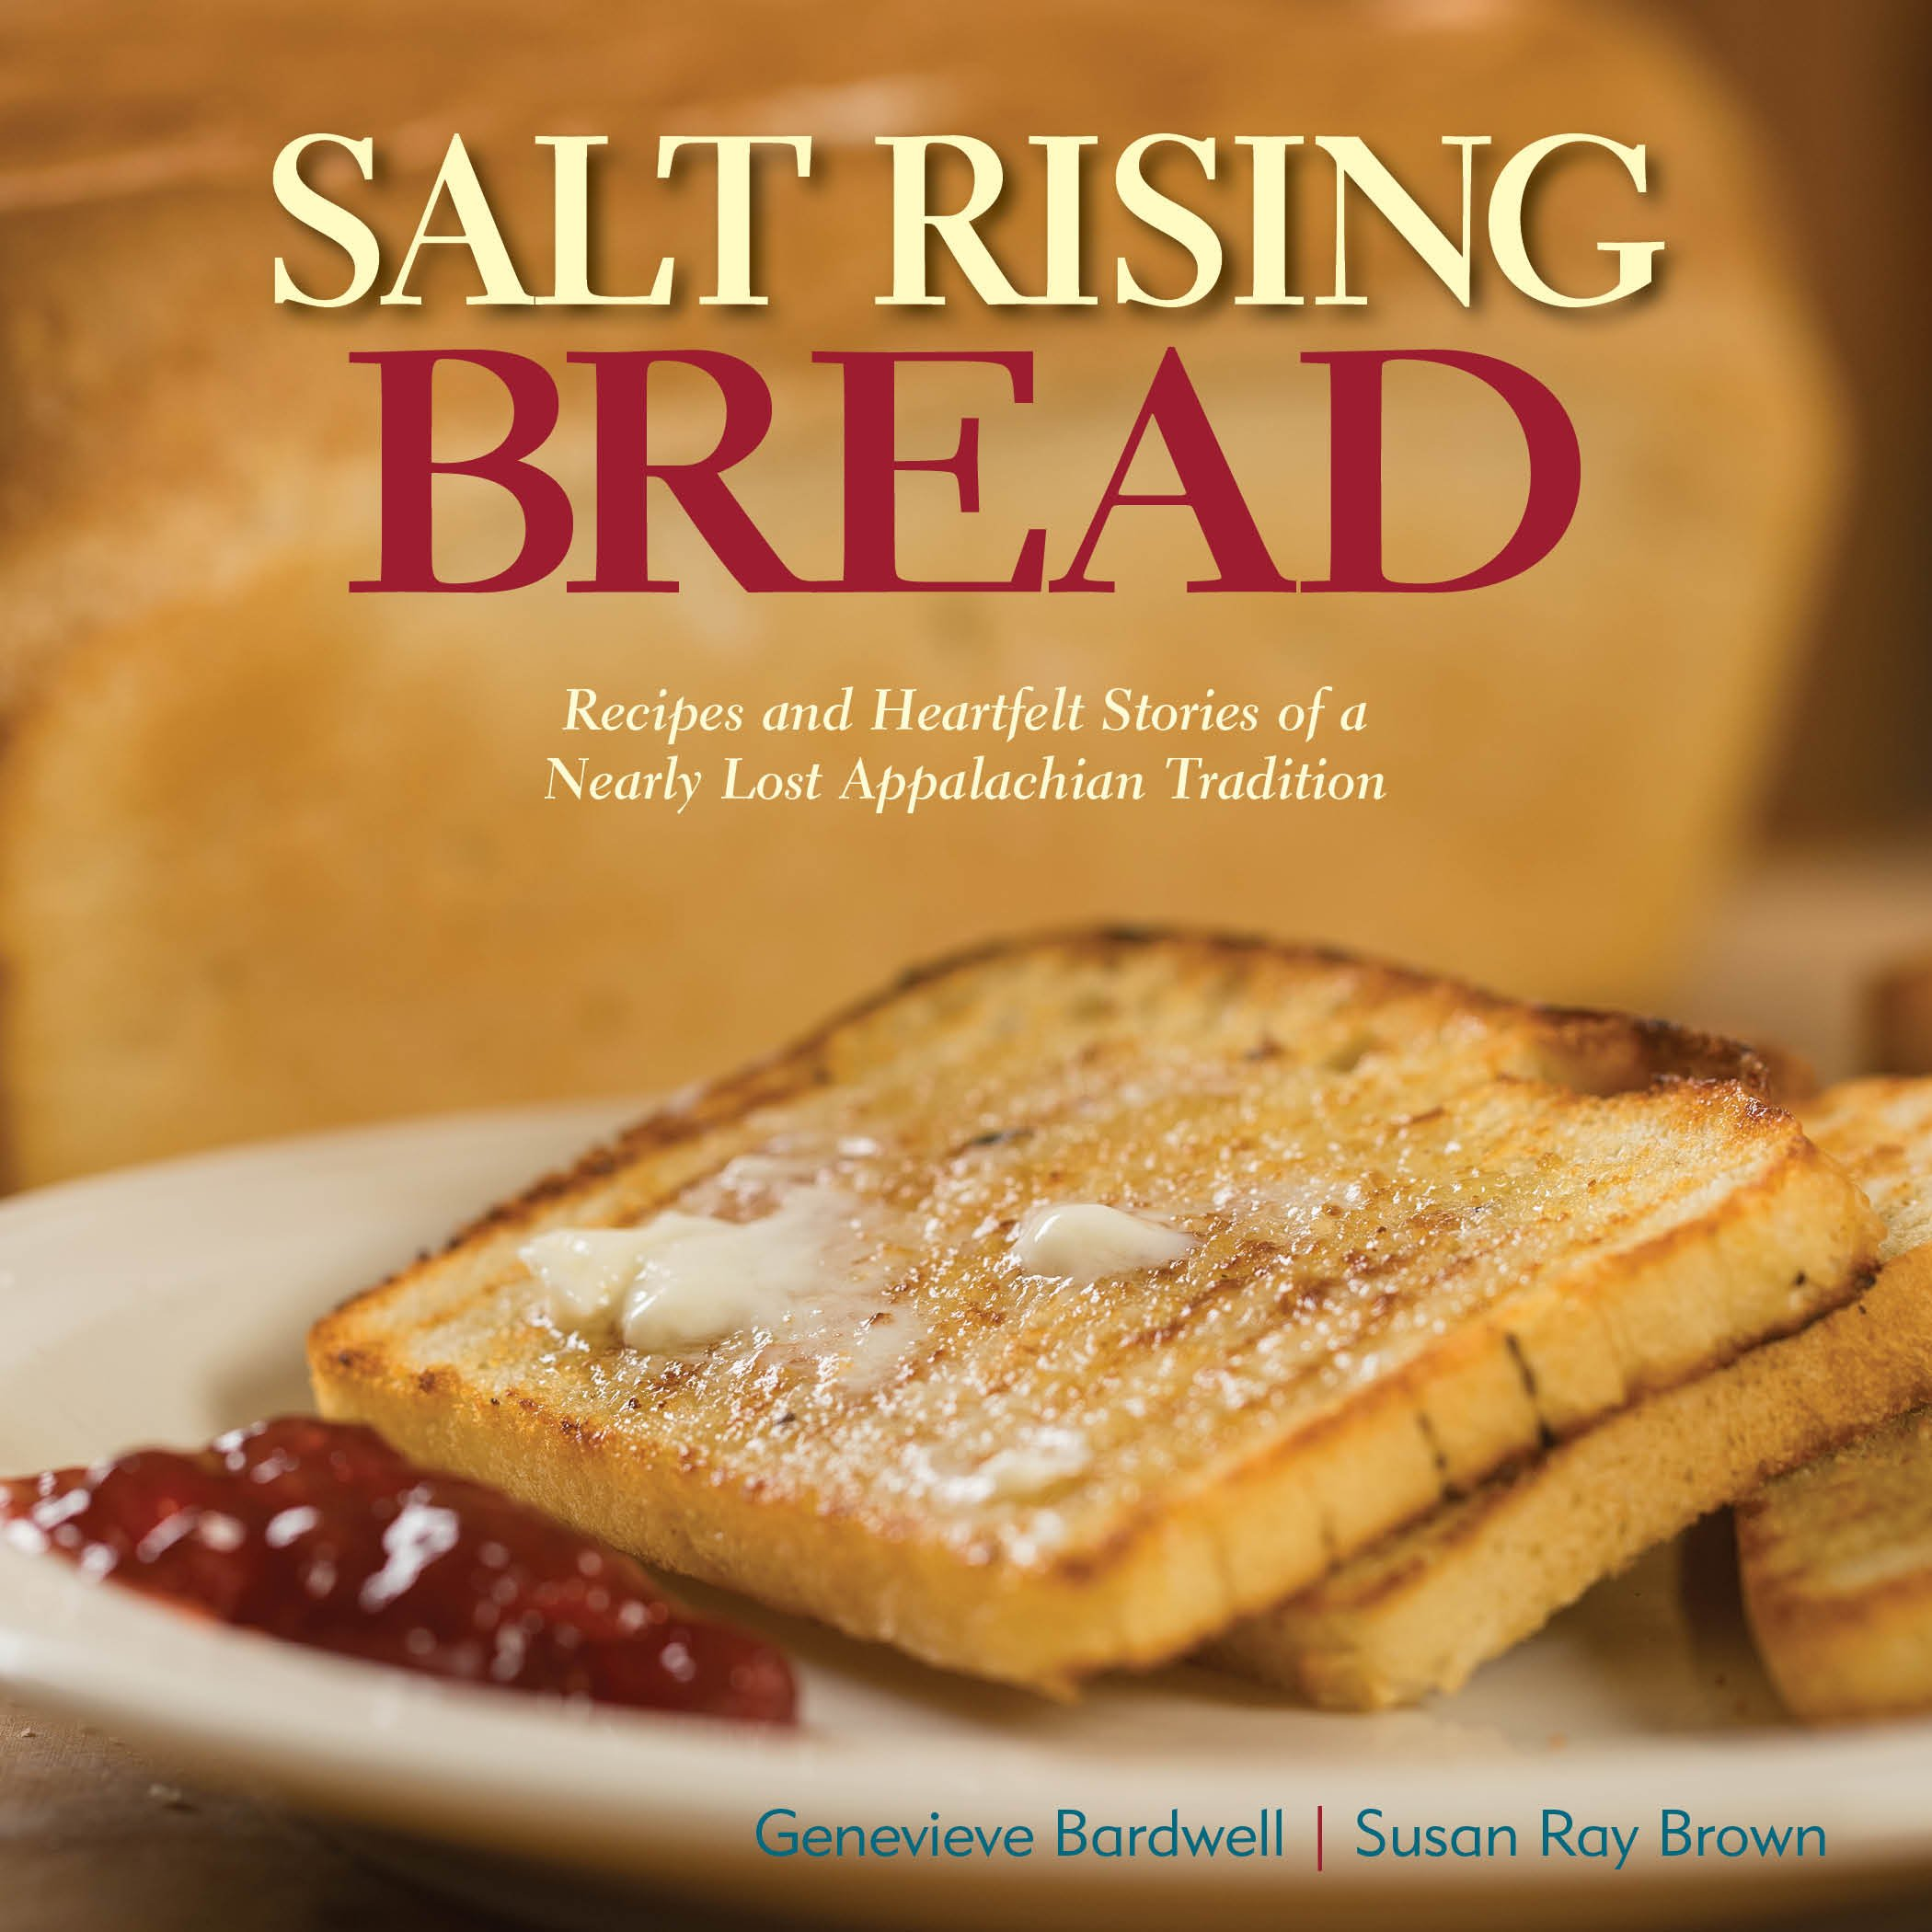 Salt rising bread recipes and heartfelt stories of a nearly lost salt rising bread recipes and heartfelt stories of a nearly lost appalachian tradition genevieve bardwell susan ray brown 0884373245271 amazon forumfinder Image collections